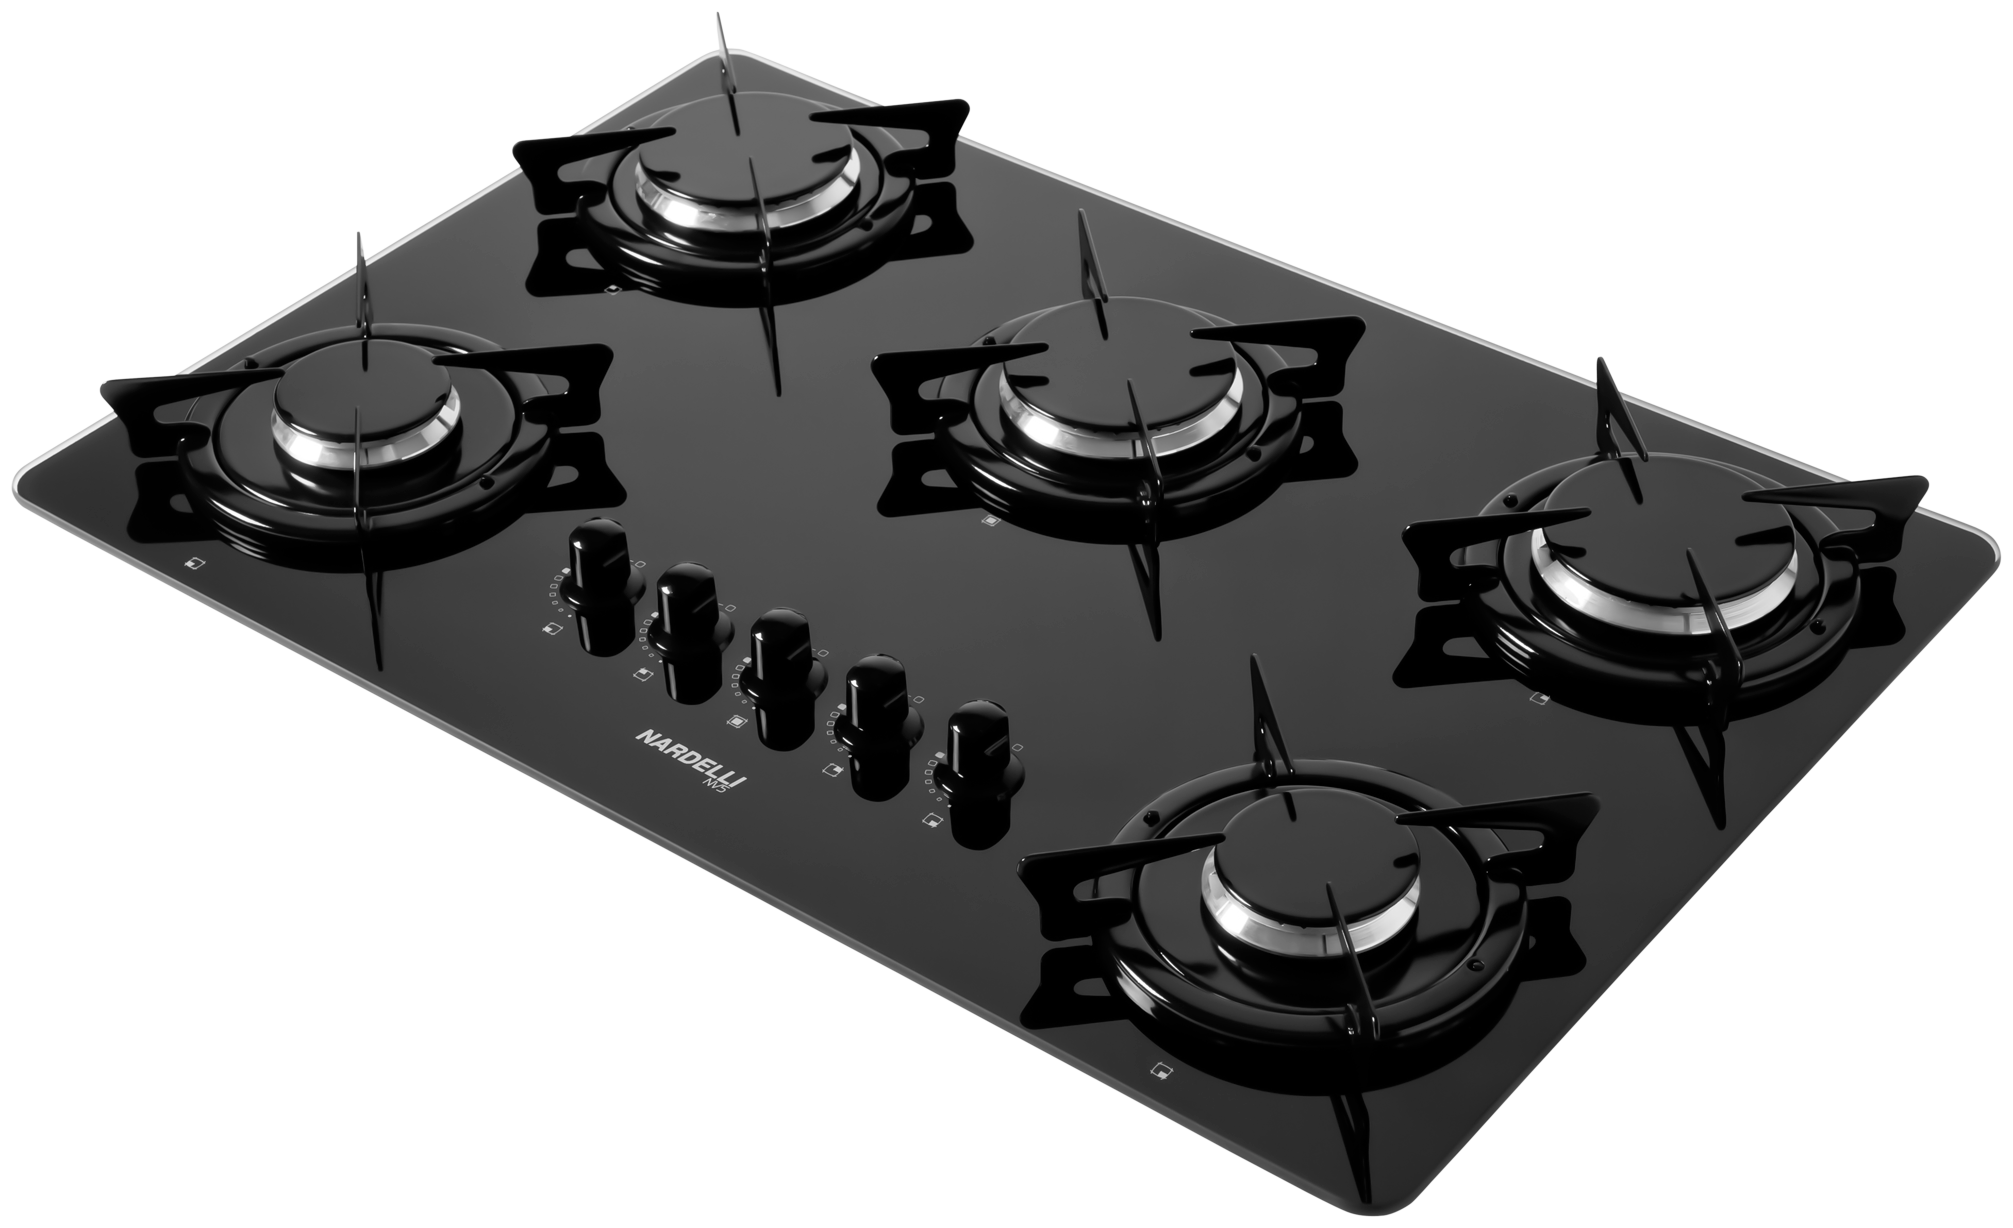 uploads gas stove gas stove PNG87 5